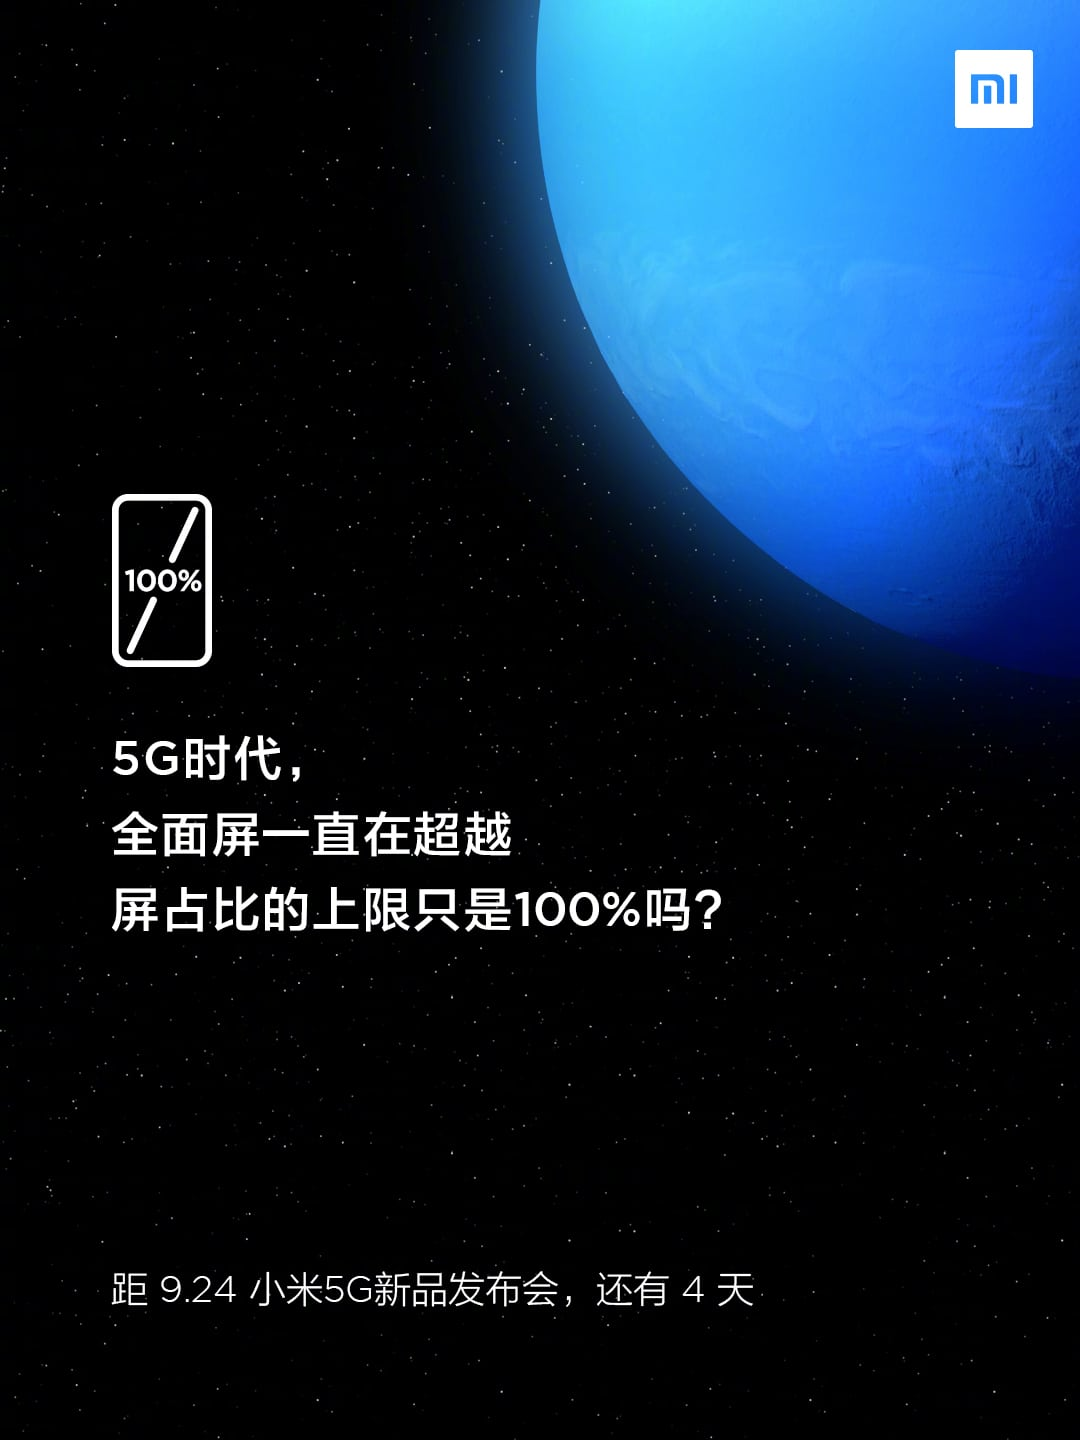 Xiaomi Mi Mix 4 going to exceed 100% of the screen ratio